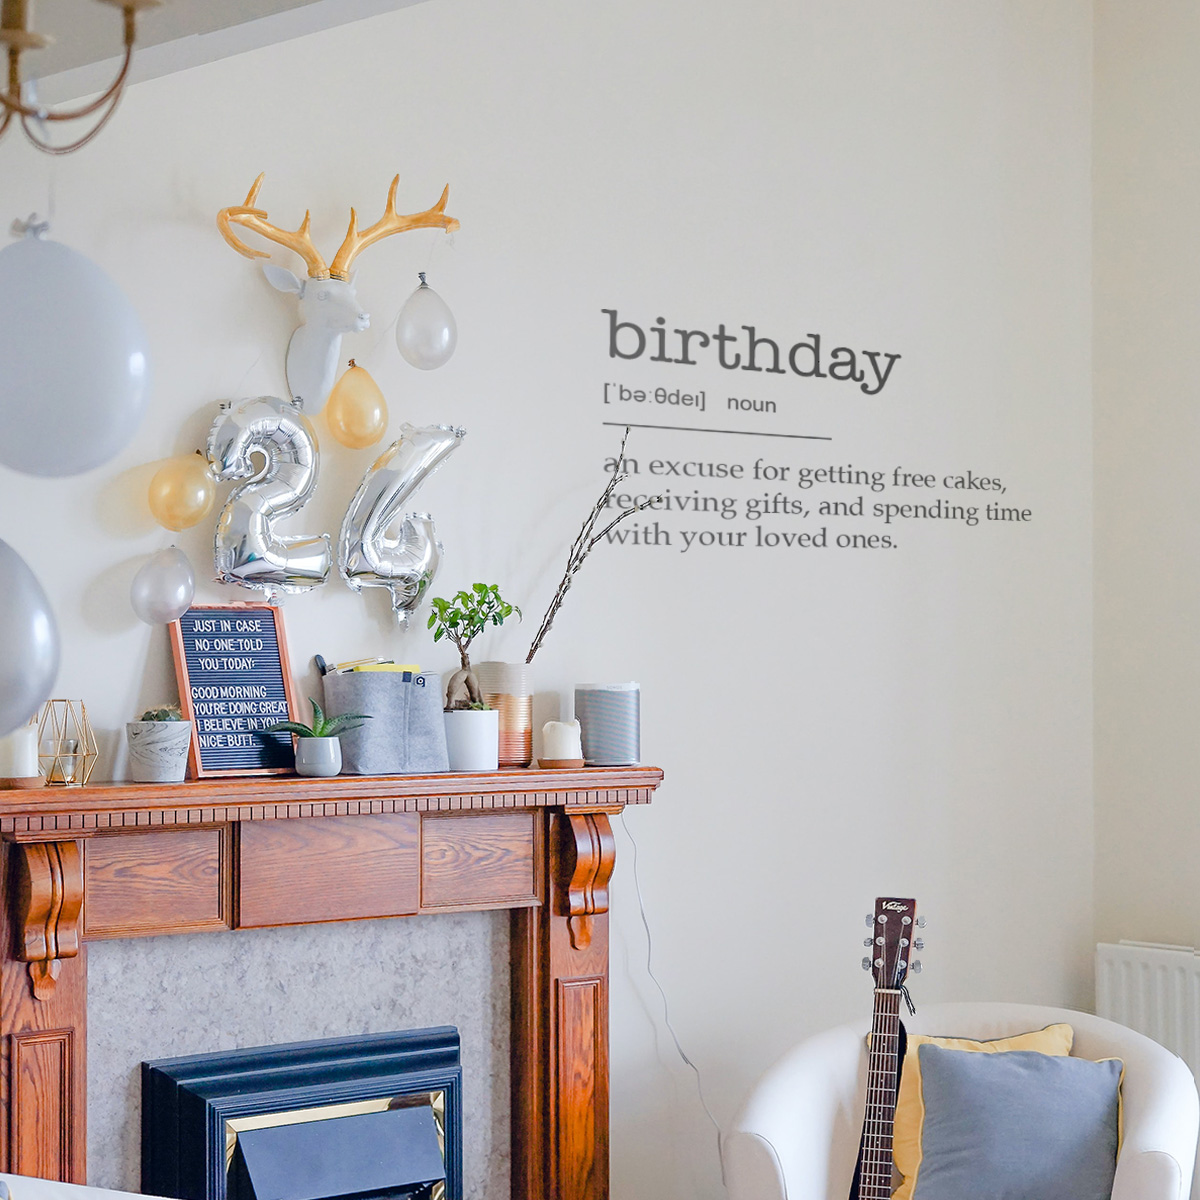 Decorative lettering wall sticker by CaptainText: birthday defined